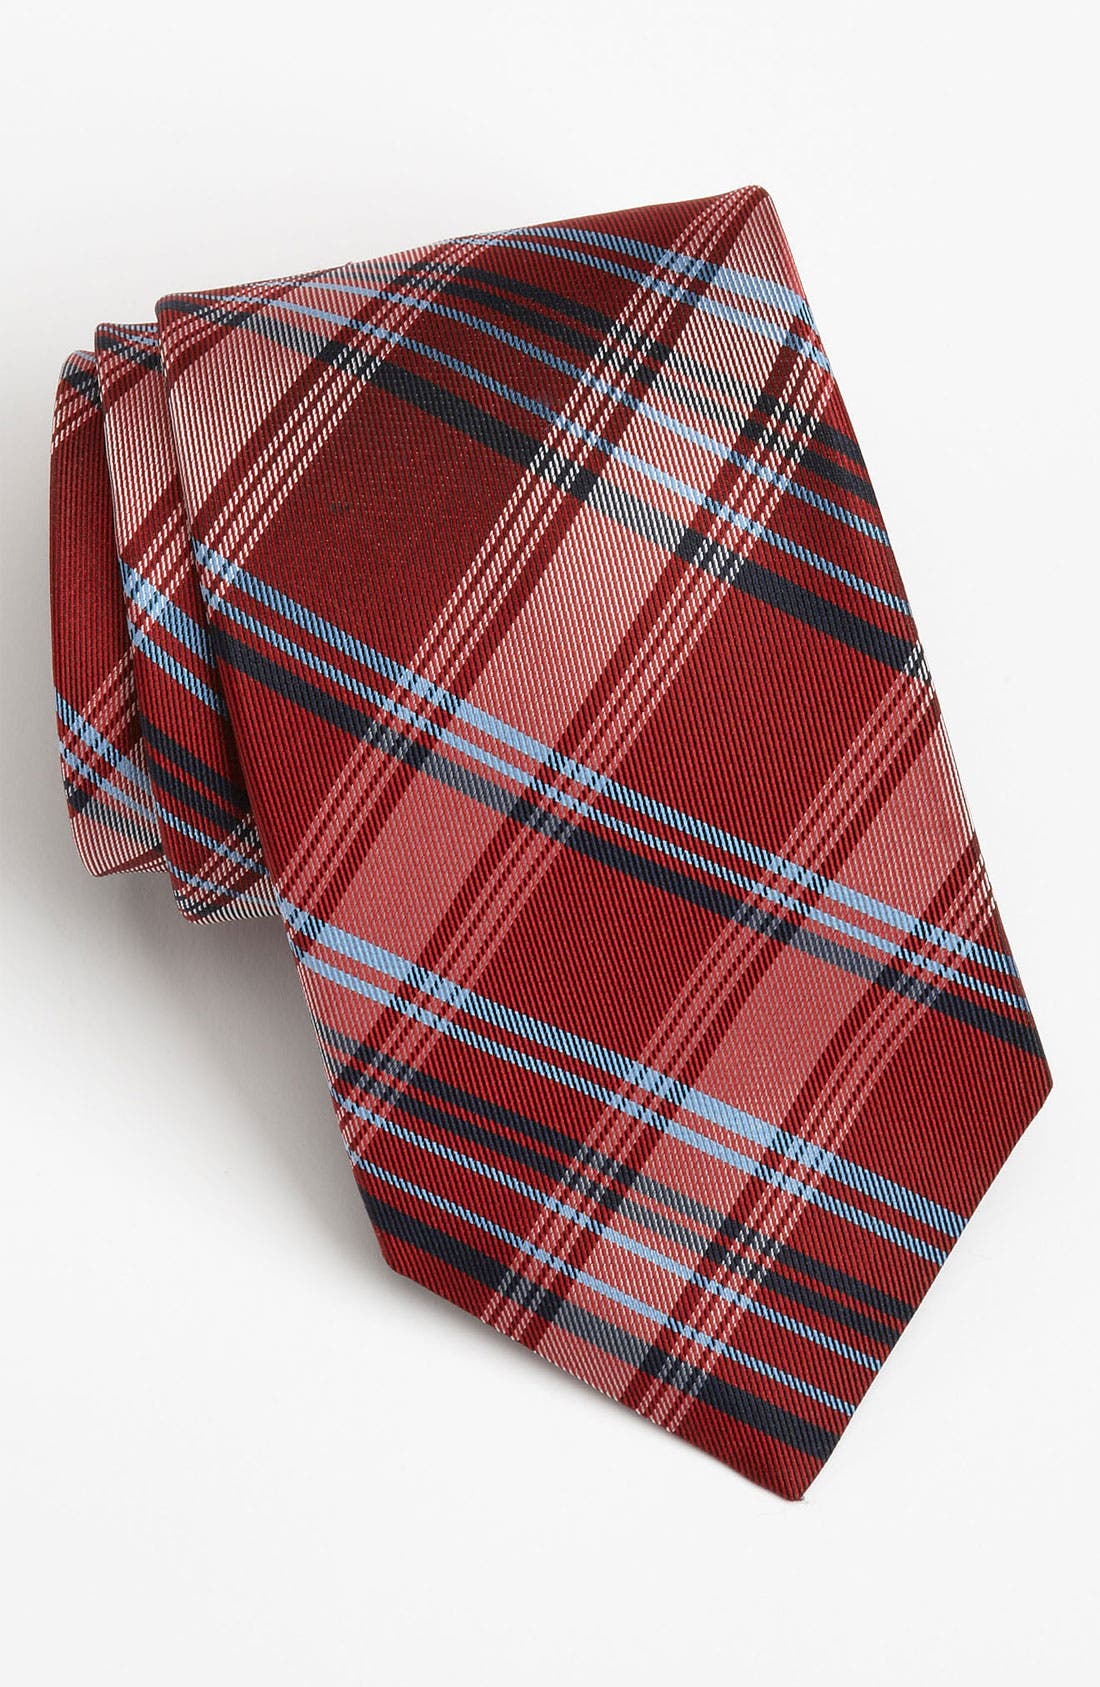 Nordstrom Woven Silk Tie,                         Main,                         color, Red